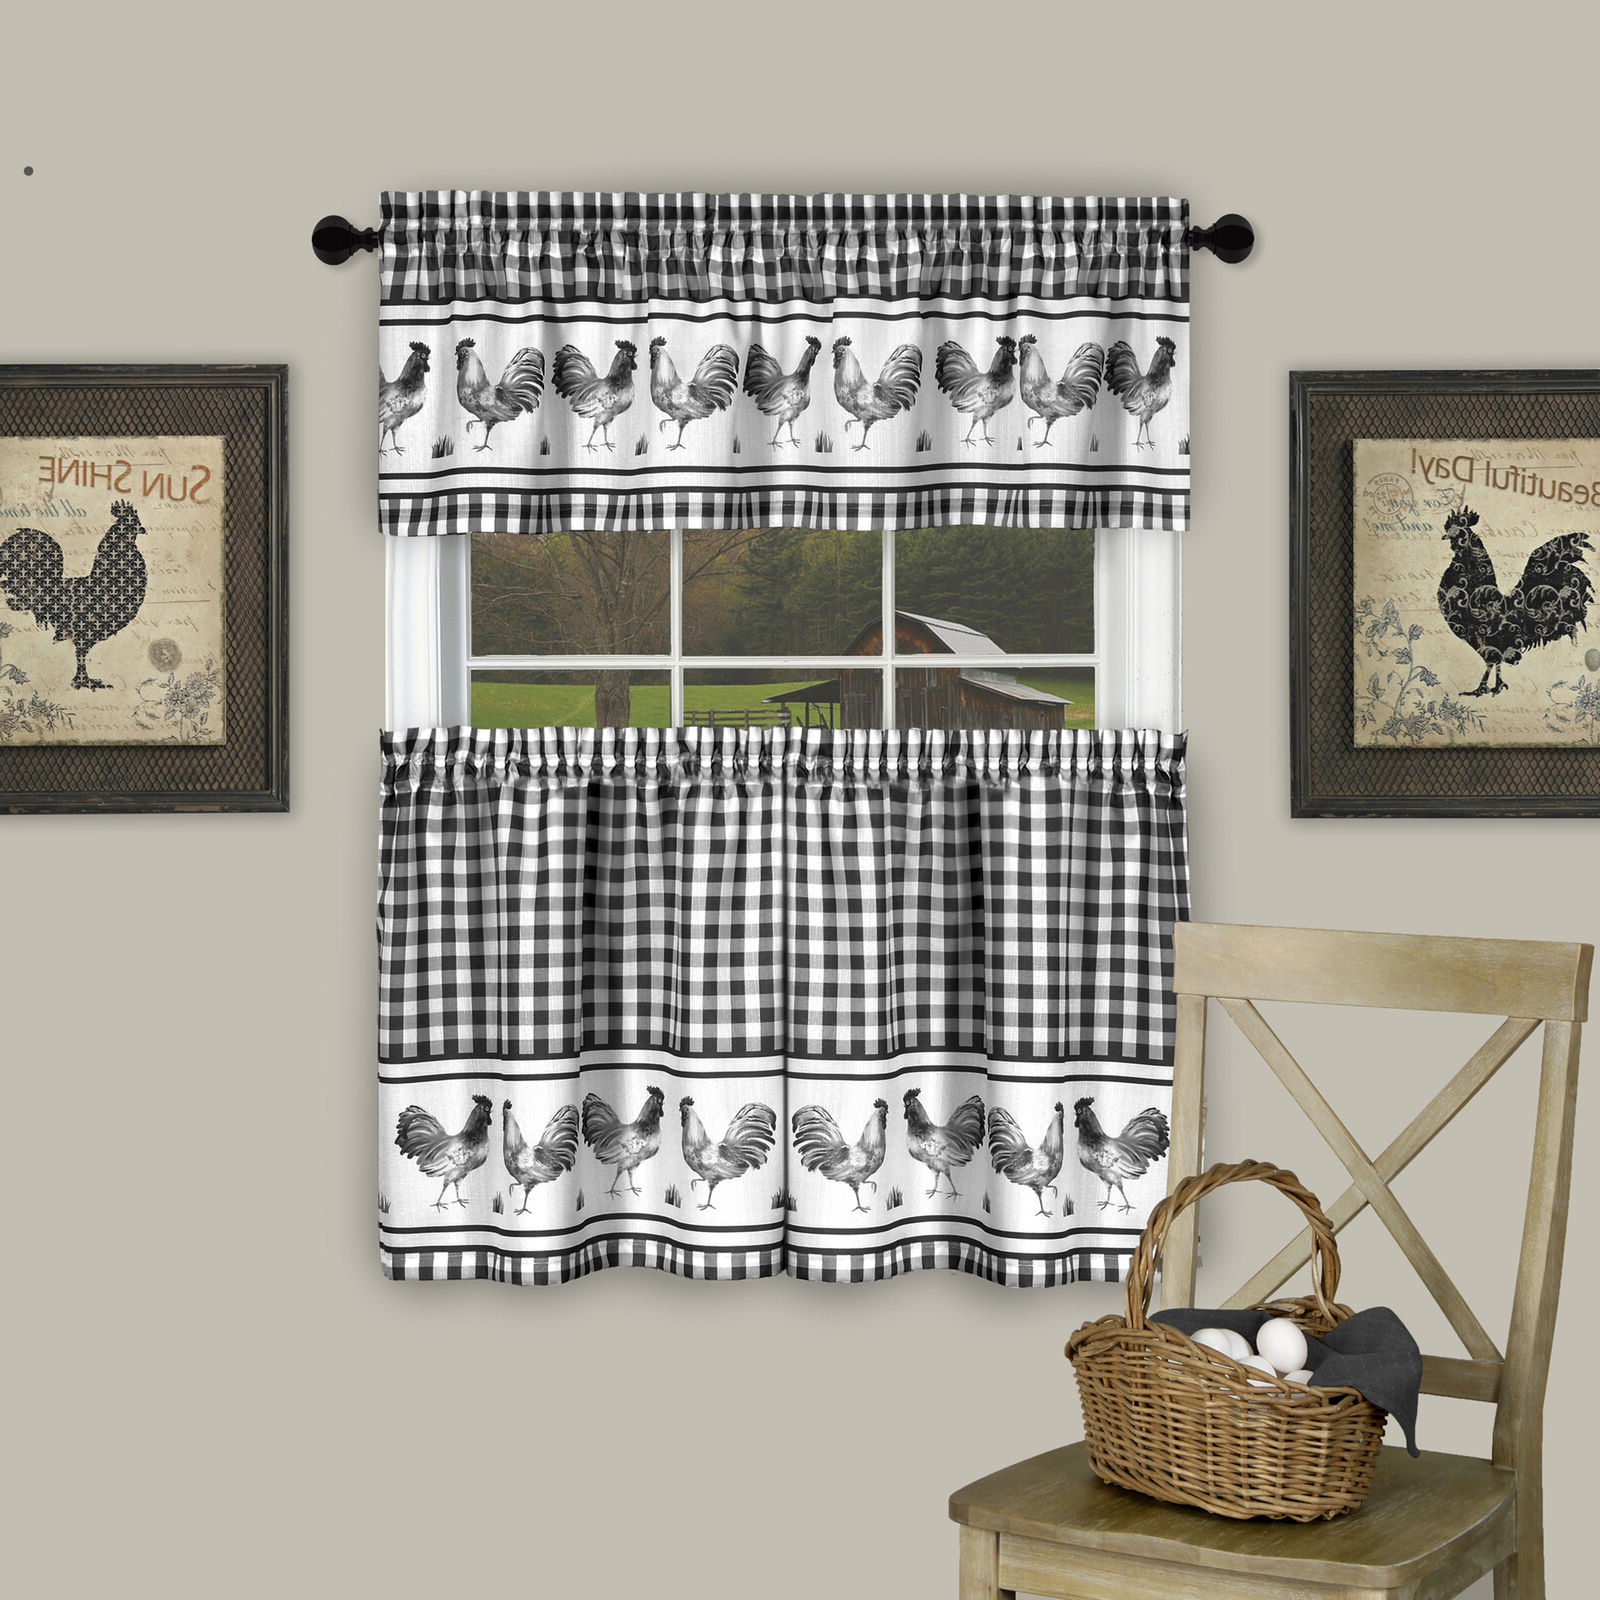 Live, Love, Laugh Window Curtain Tier Pair And Valance Sets In Best And Newest 3pc Kitchen Curtain Set, Check Gingham Plaid Rooster, Tier Panels And Valance (View 7 of 20)